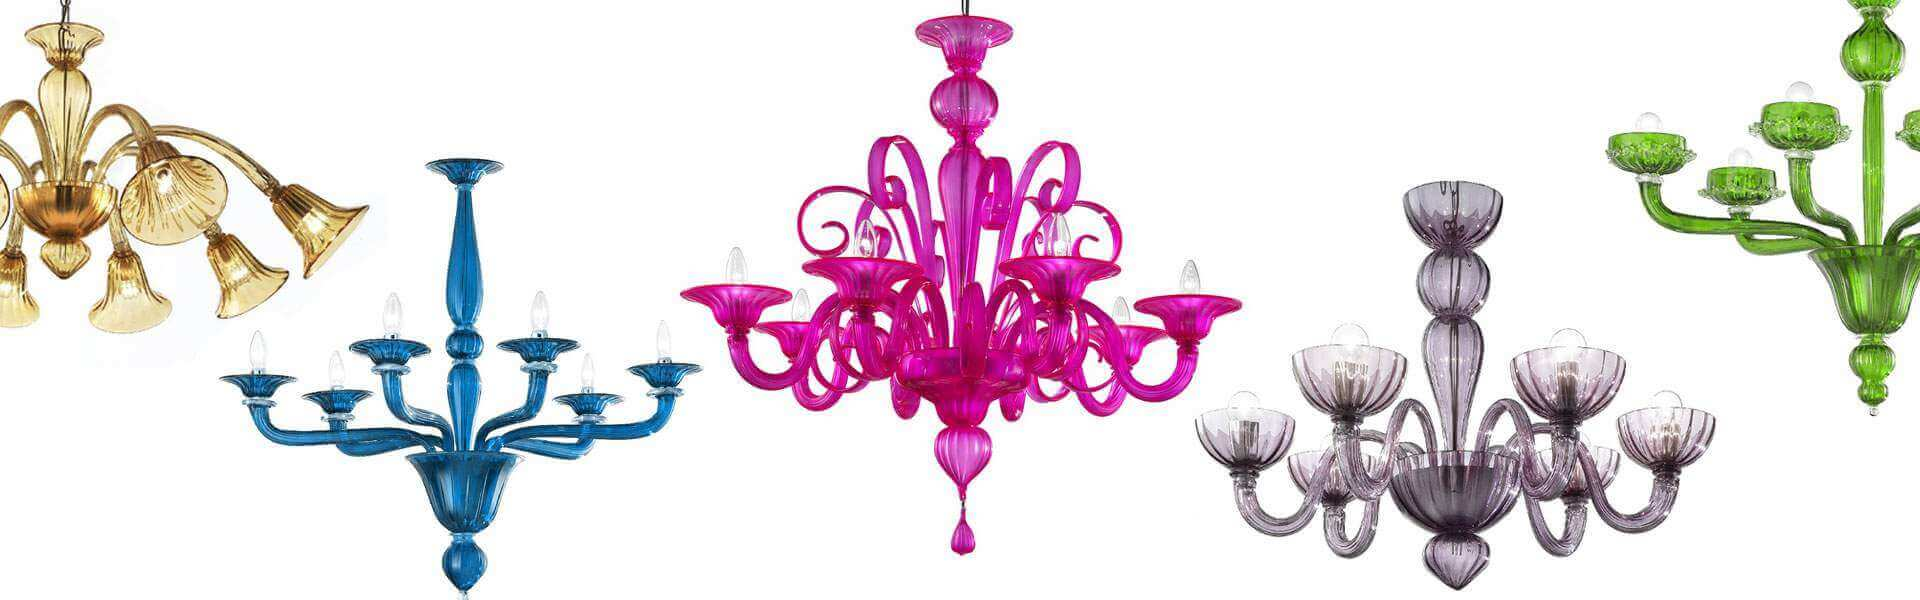 murano chandeliers murano glass chandeliers for sale from italy aloadofball